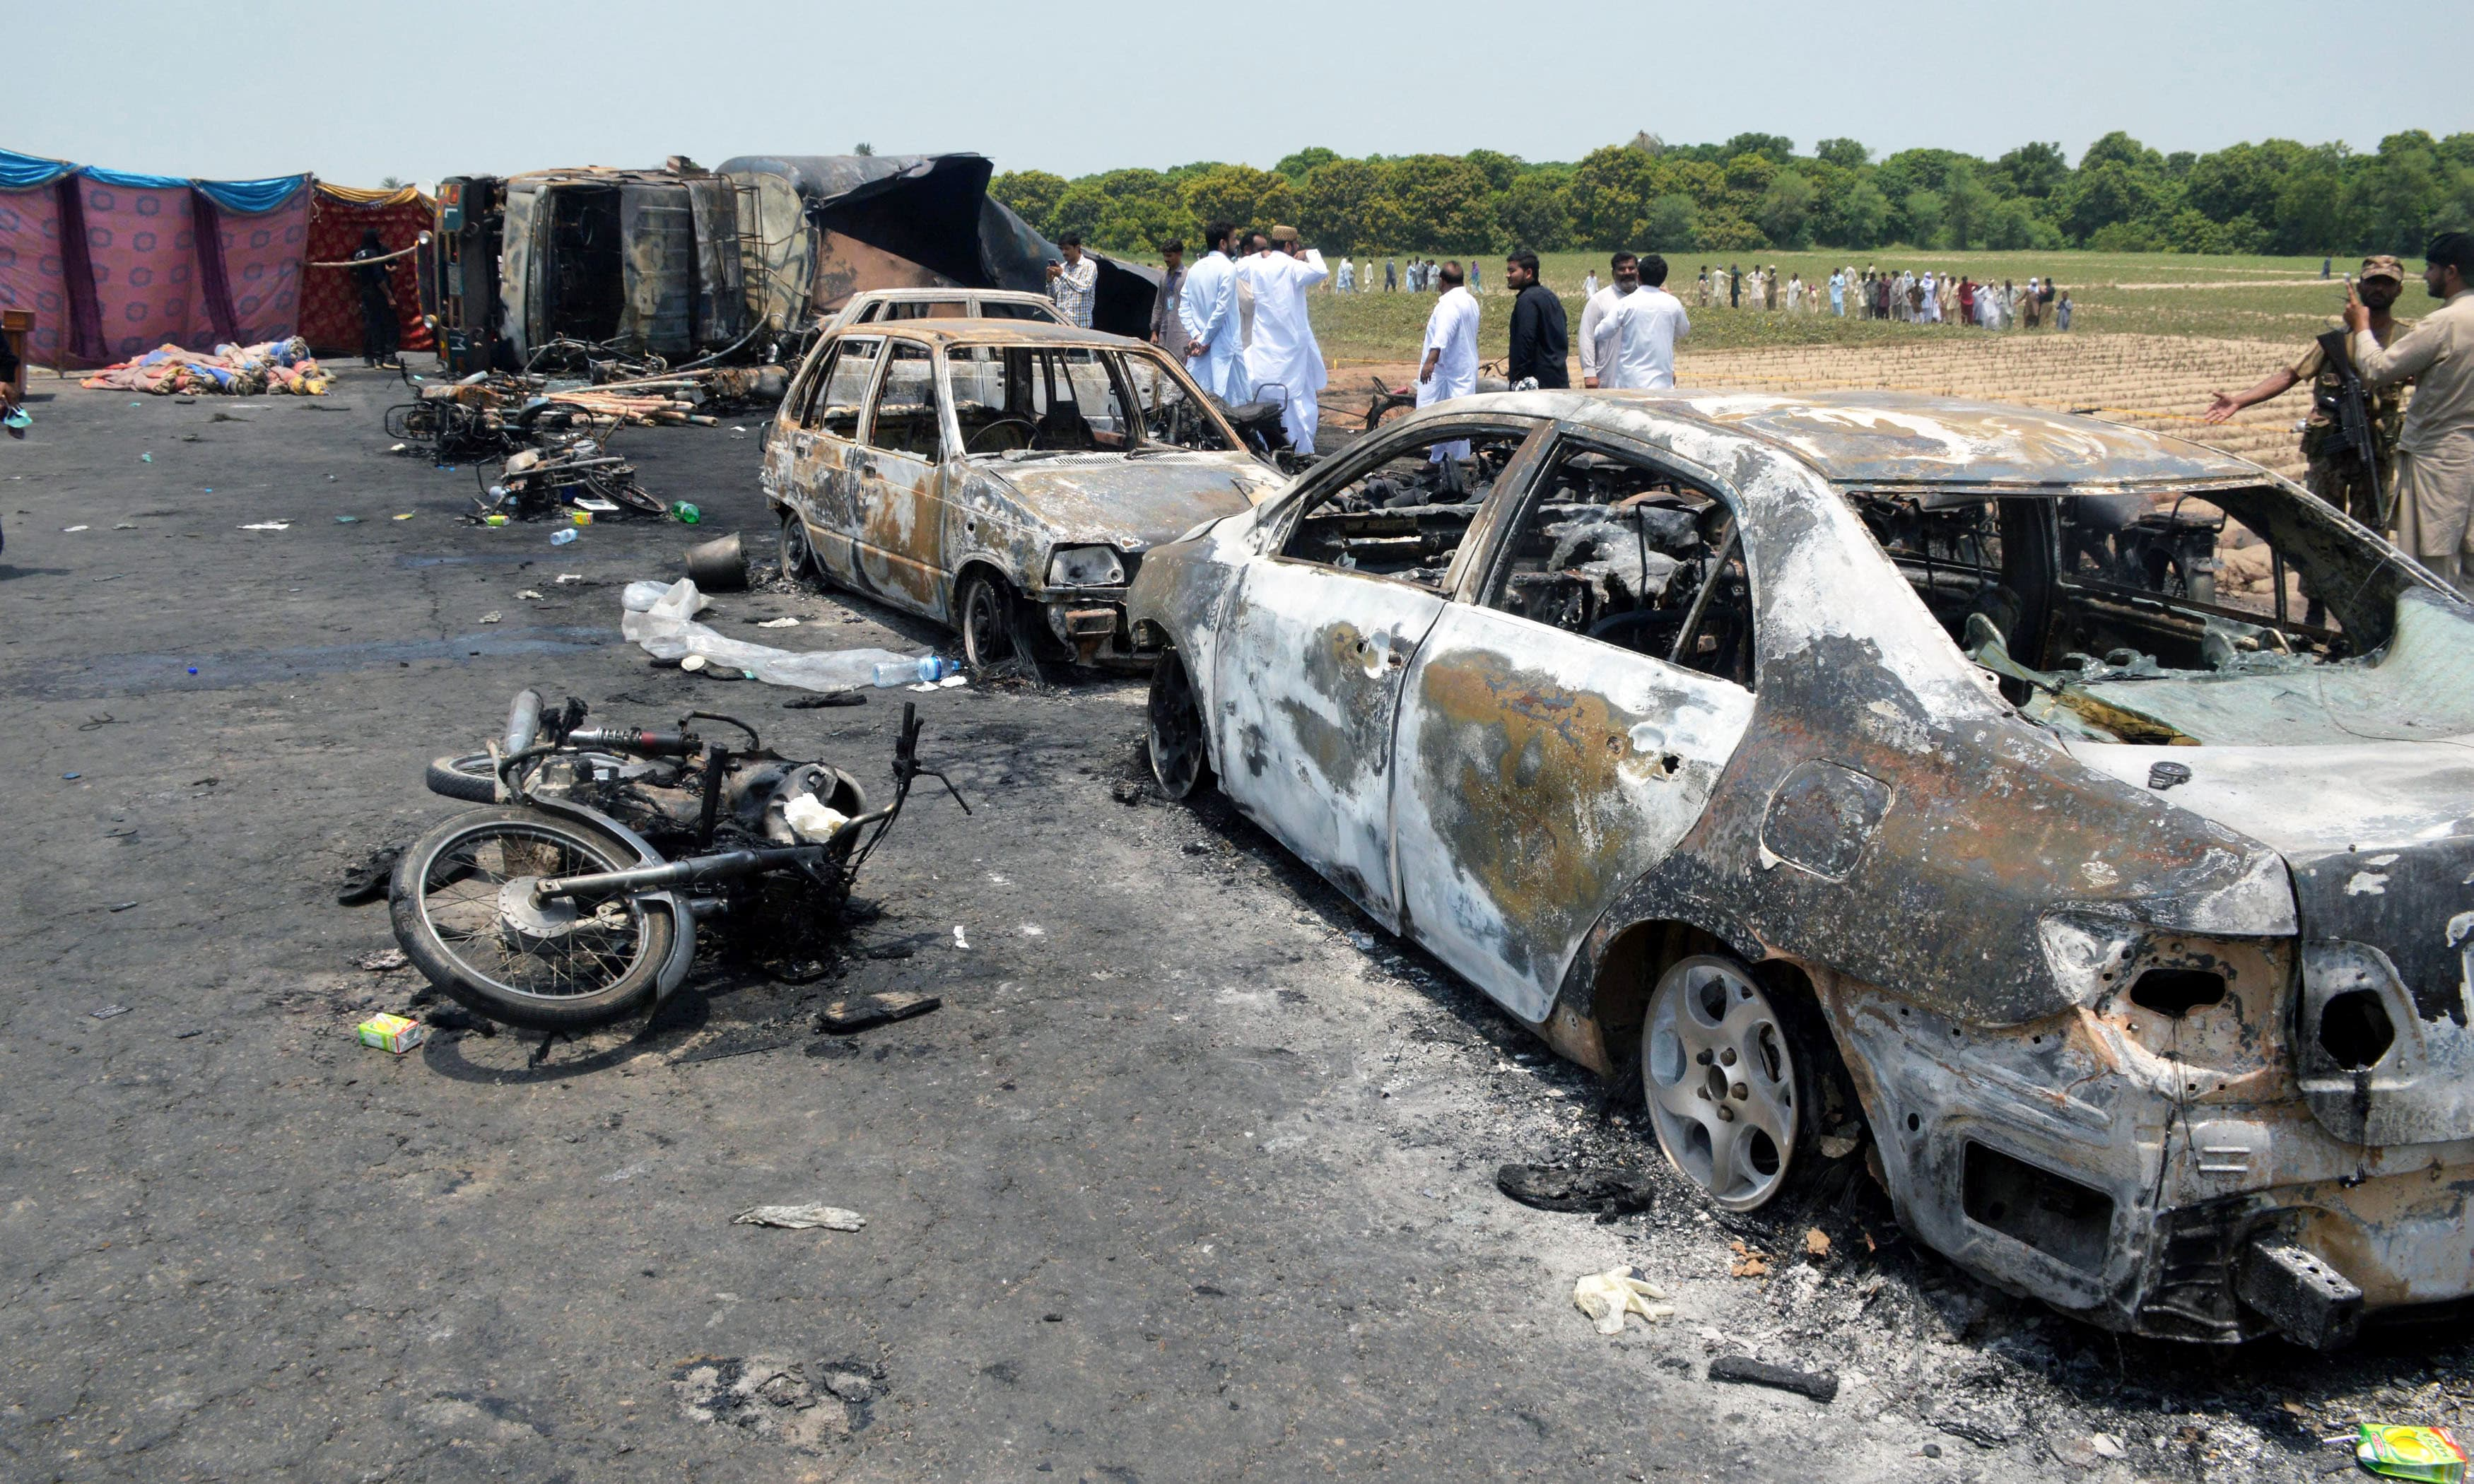 Burnt out cars and motorcycles are seen at the scene of an oil tanker explosion in Bahawalpur. ─Reuters